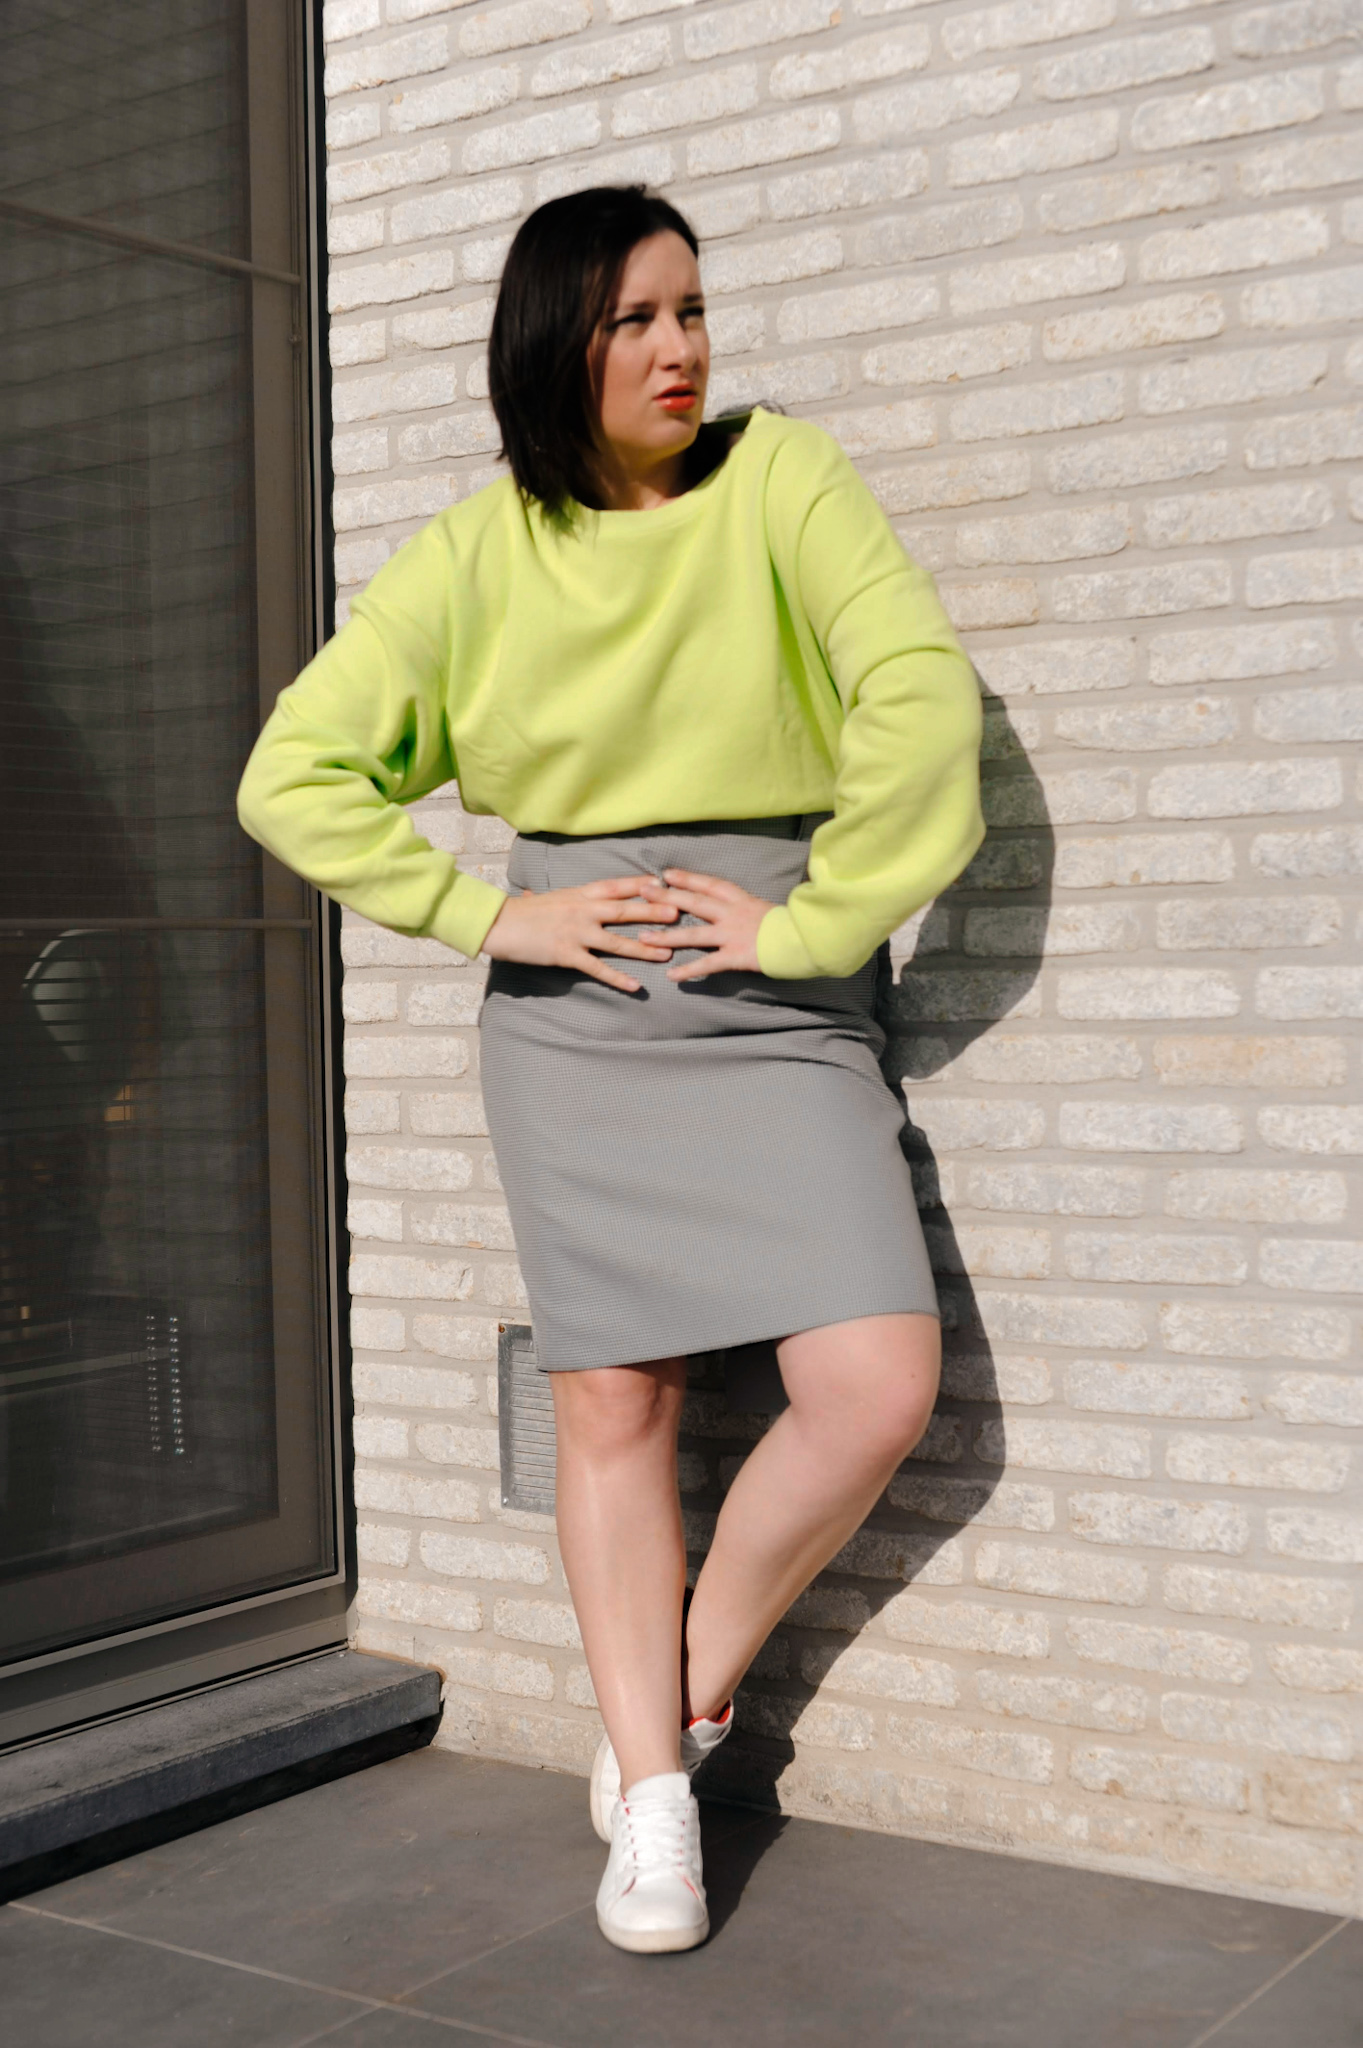 vintage preloved pied-de-poule skirt with neon green sweater